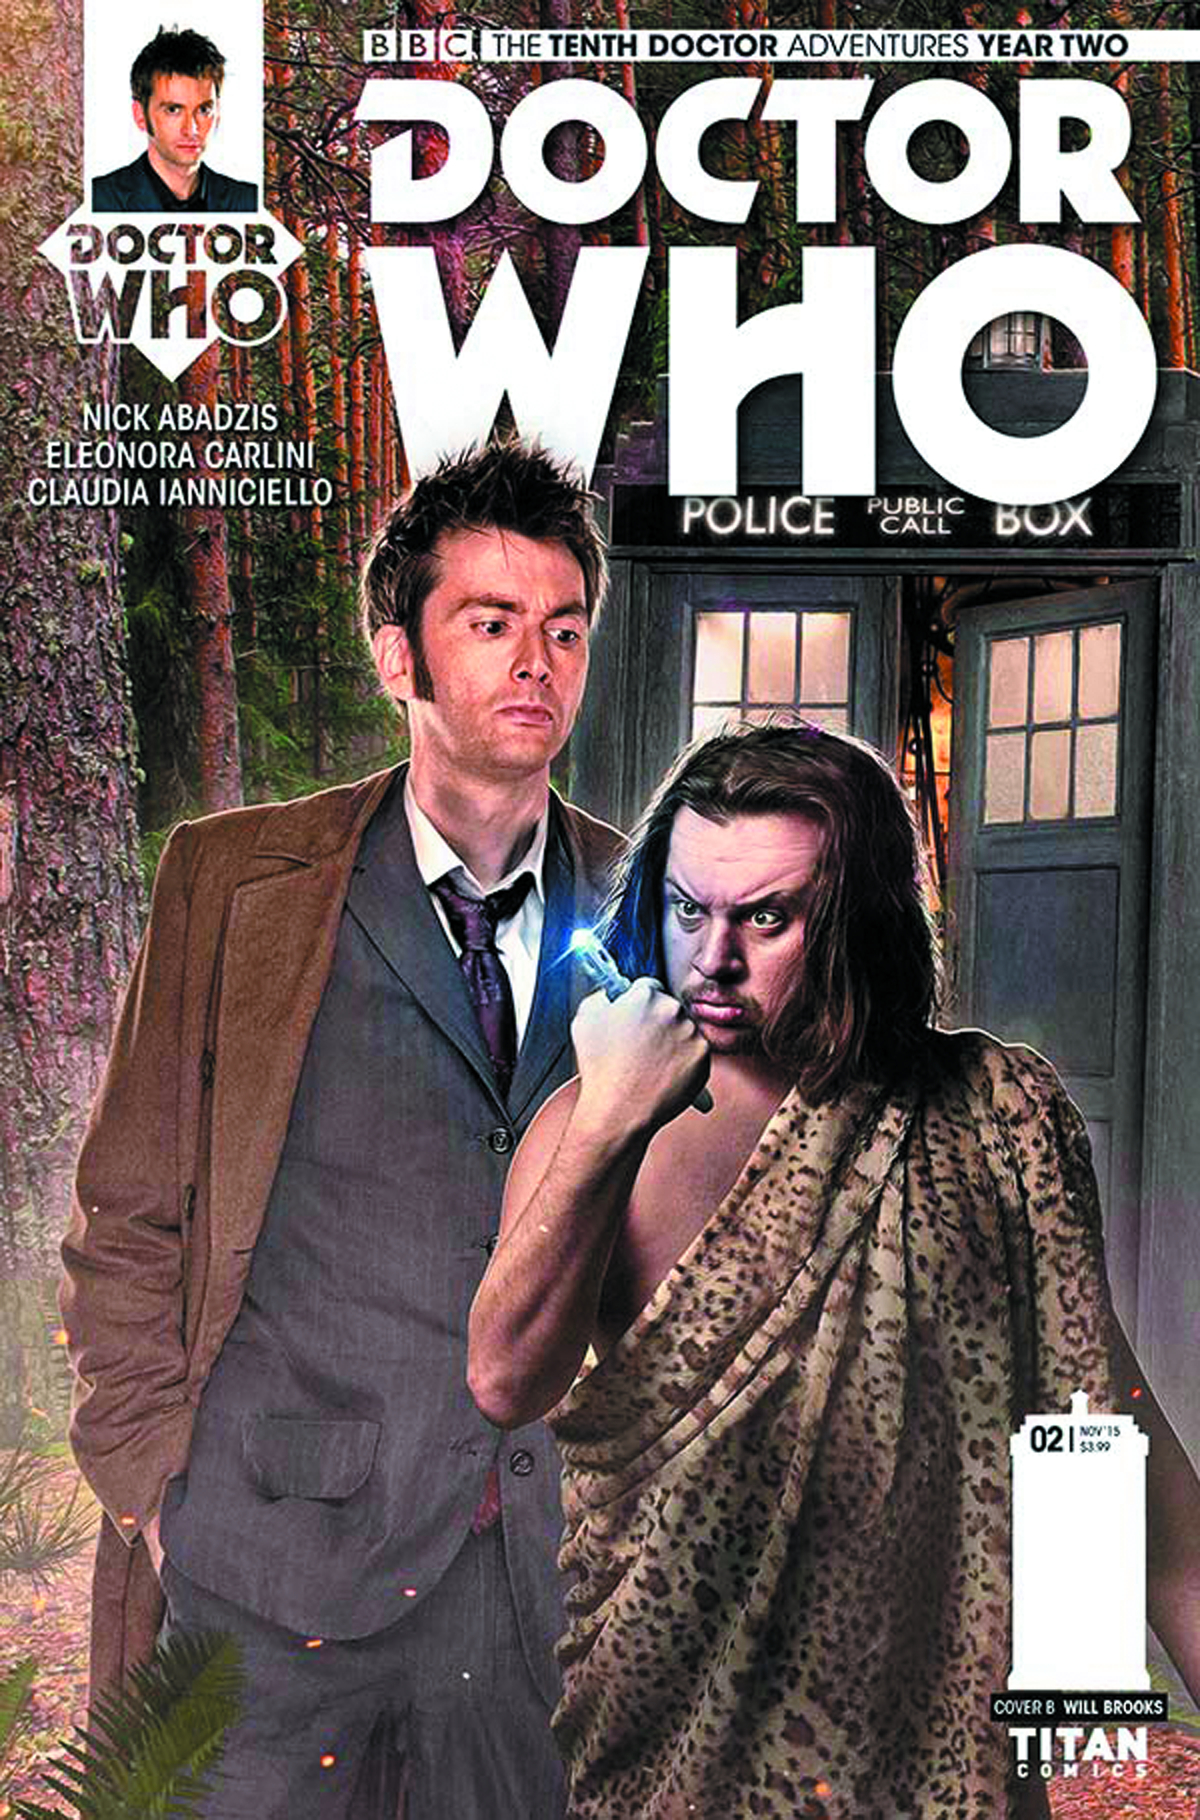 DOCTOR WHO 10TH YEAR TWO #4 SUBSCRIPTION PHOTO